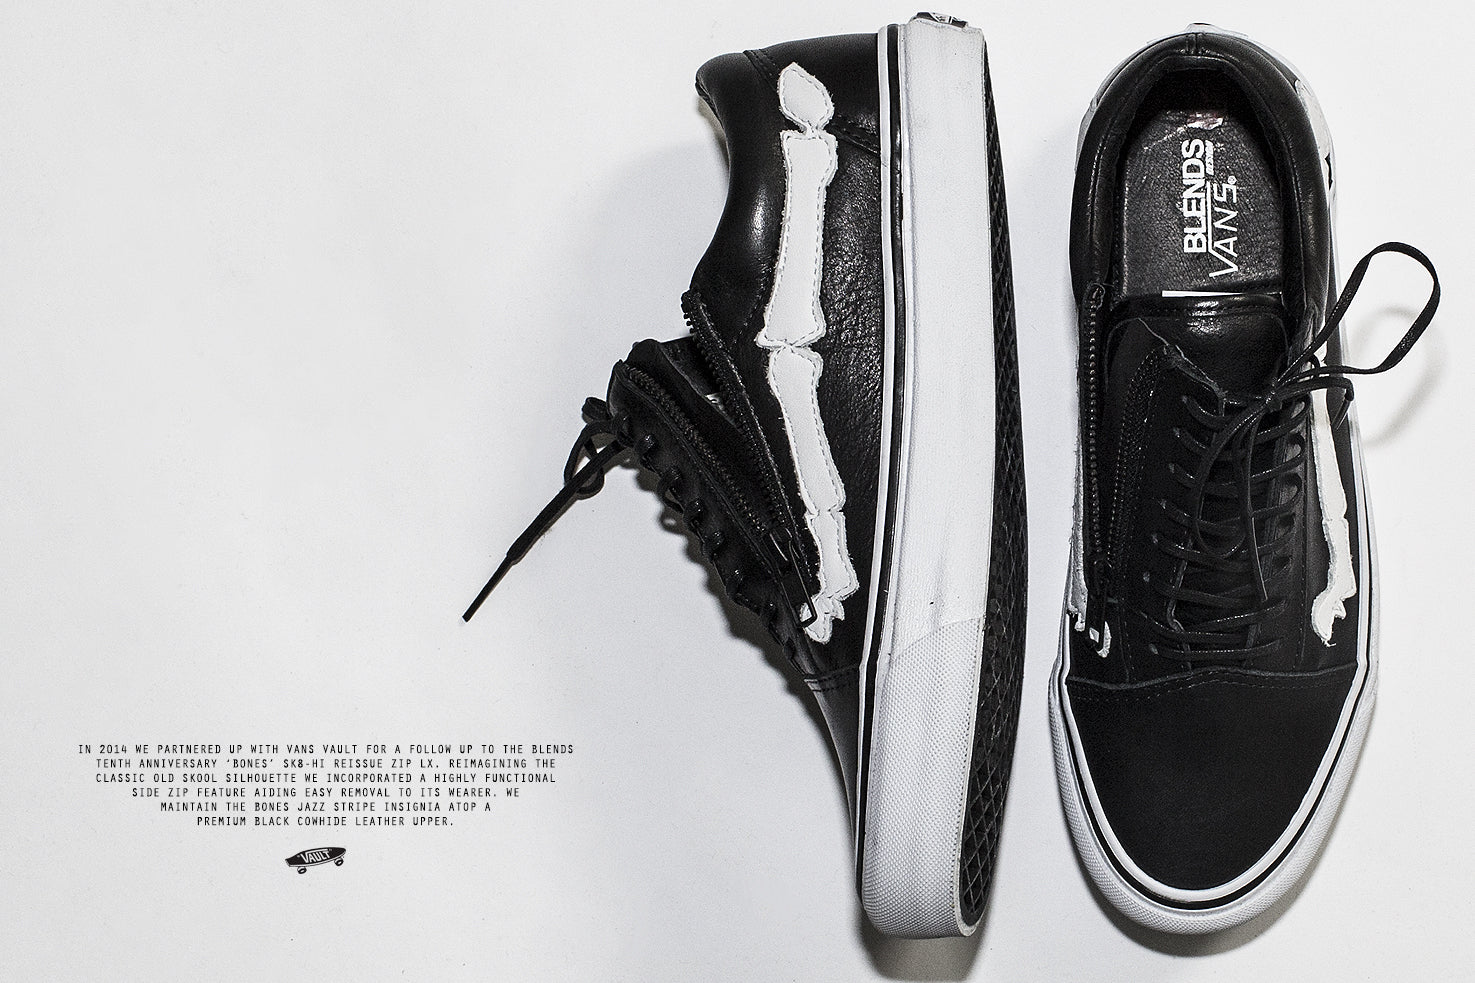 Vans Vault x Blends Old Skool Zip LX